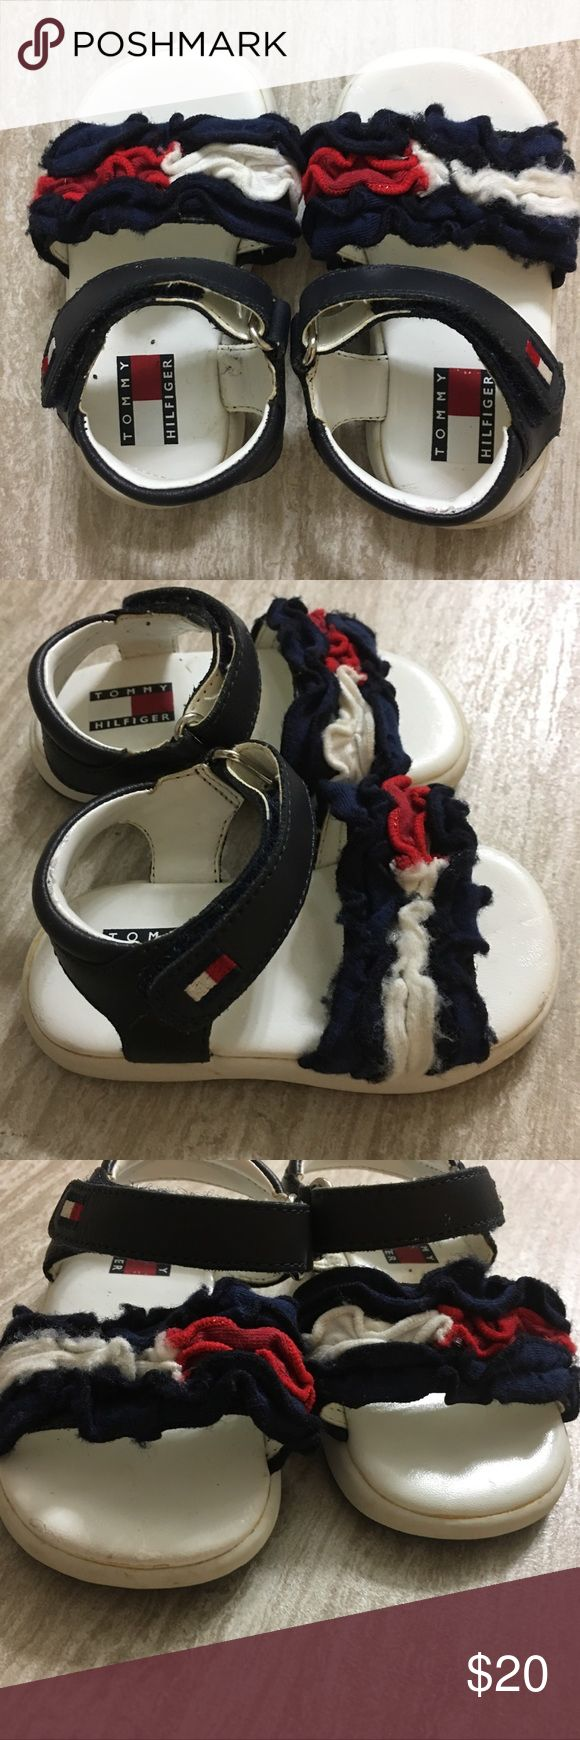 Tommy Hilfiger baby sandals In good used condition with no flaws. Cute ruffle detail at top, Velcro closure. Feel free to ask questions! Tommy Hilfiger Shoes Sandals & Flip Flops